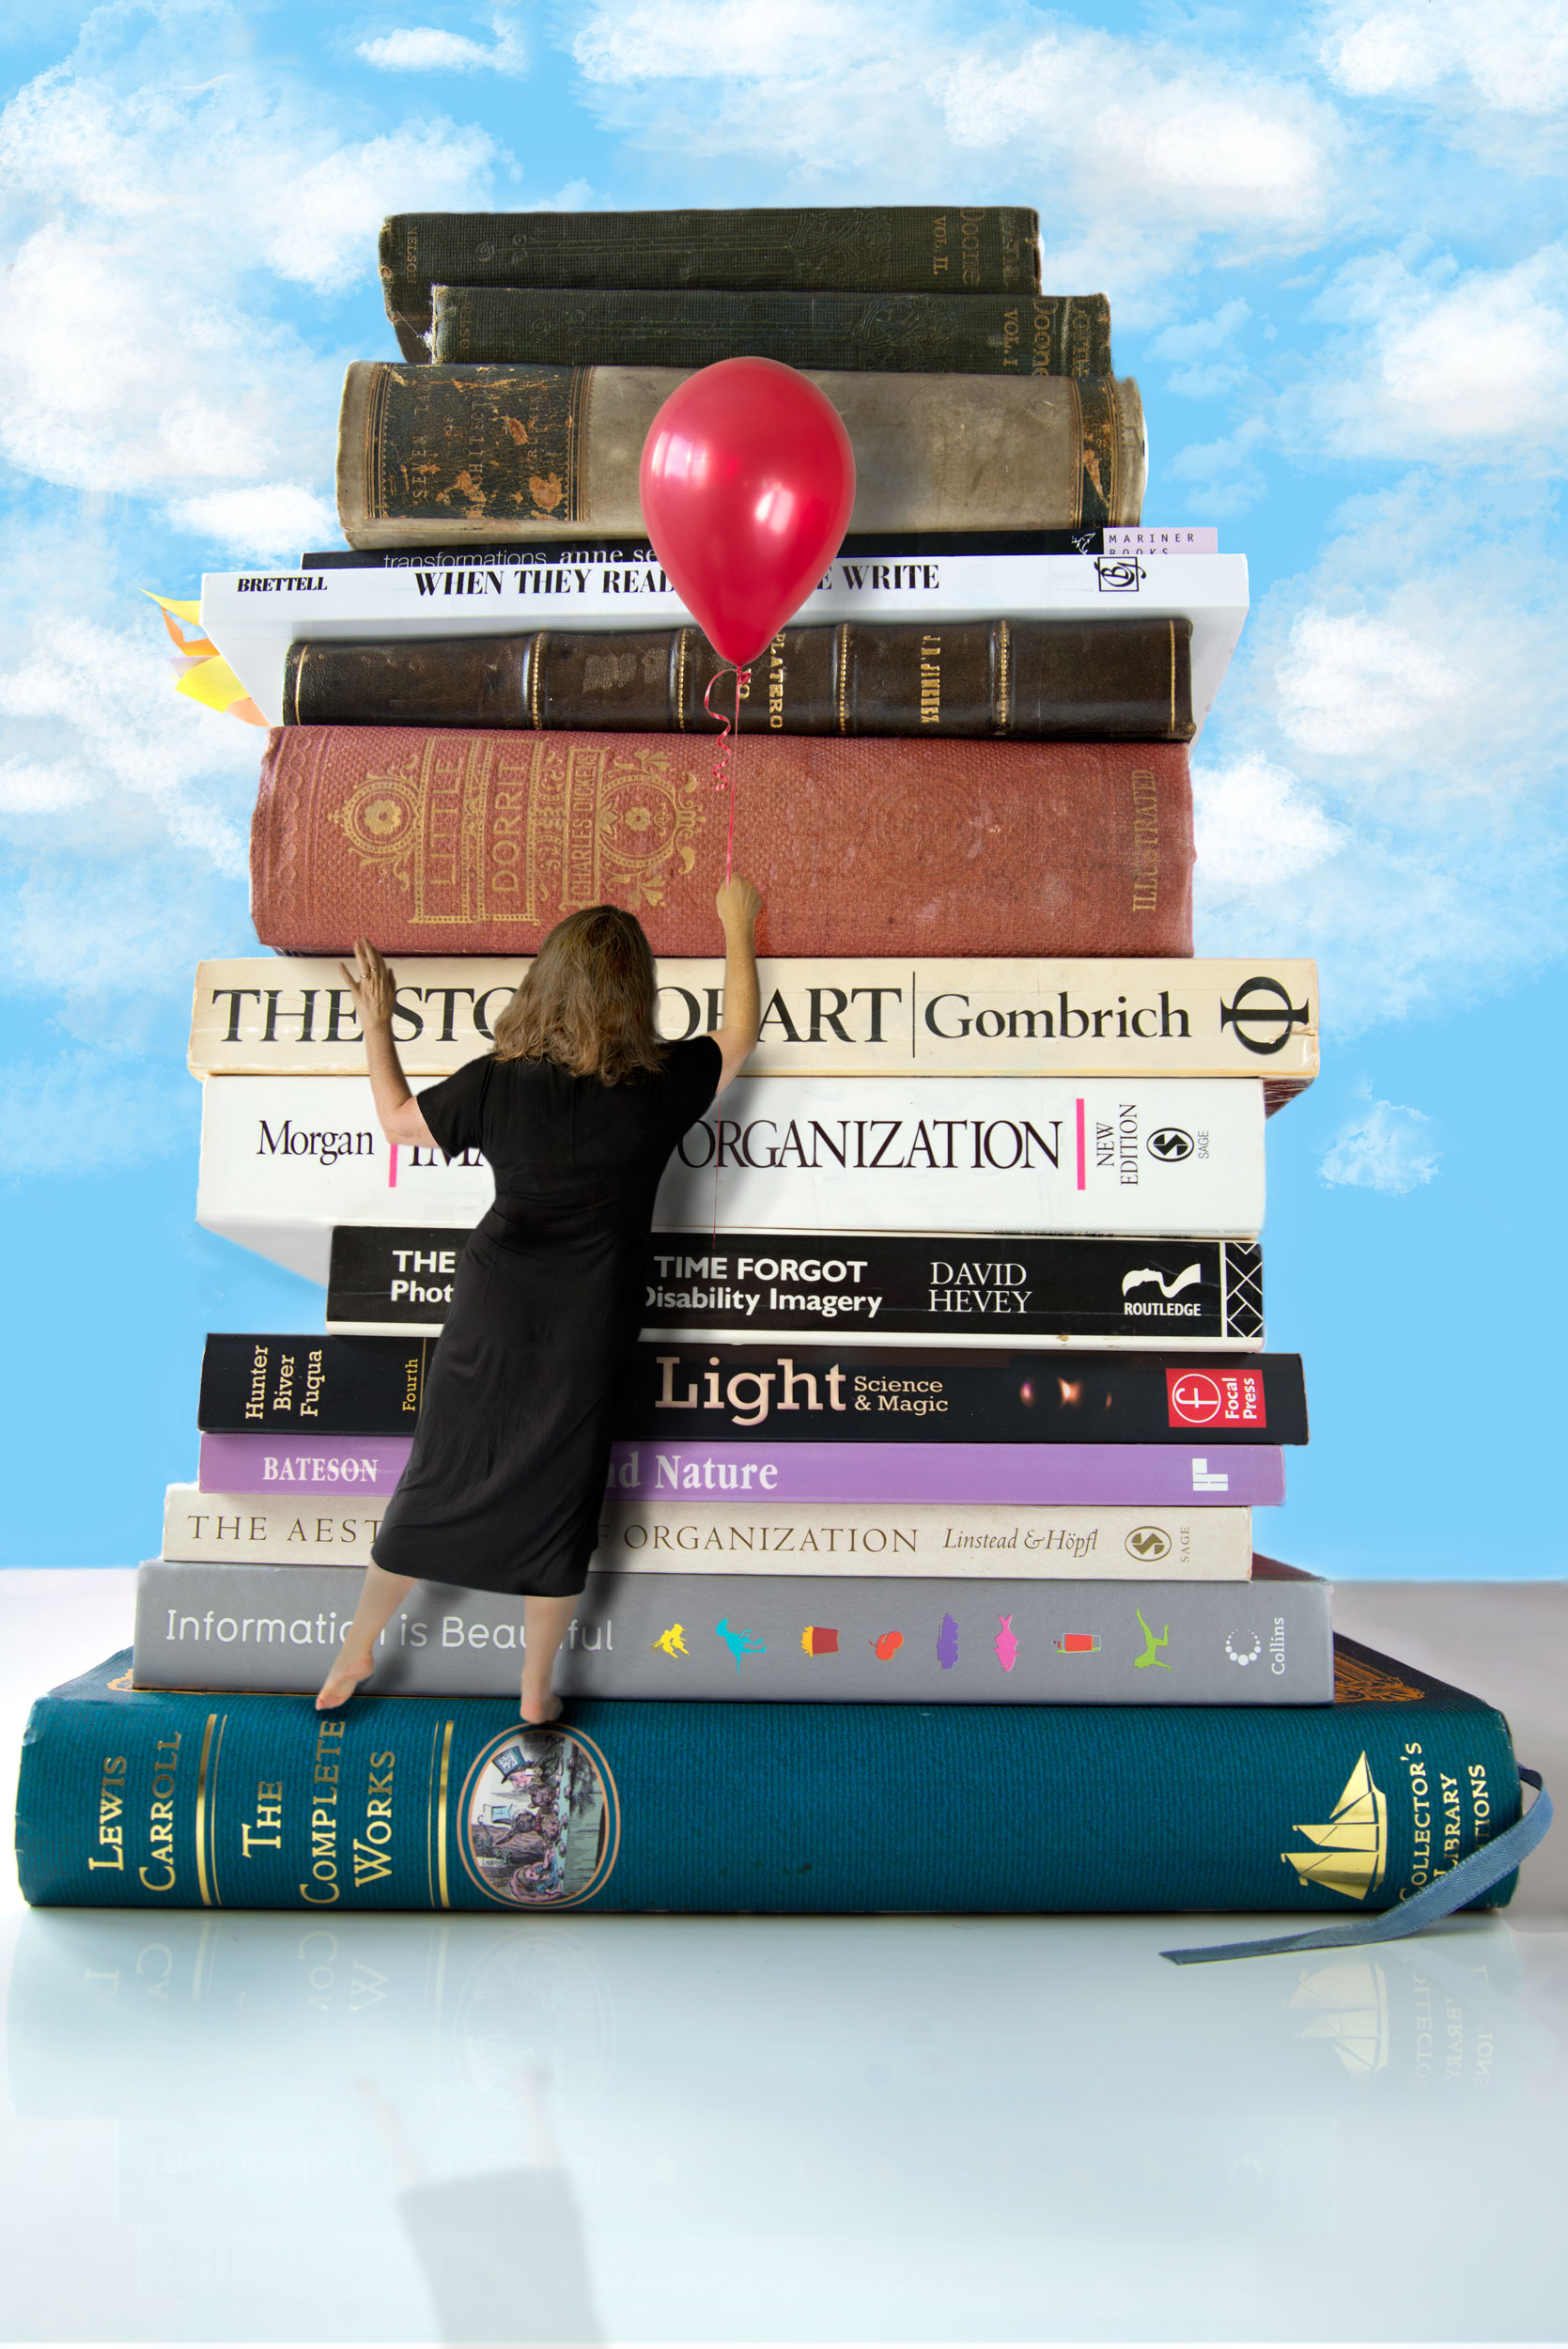 Miniature woman holding a red balloon in front of a tower of books